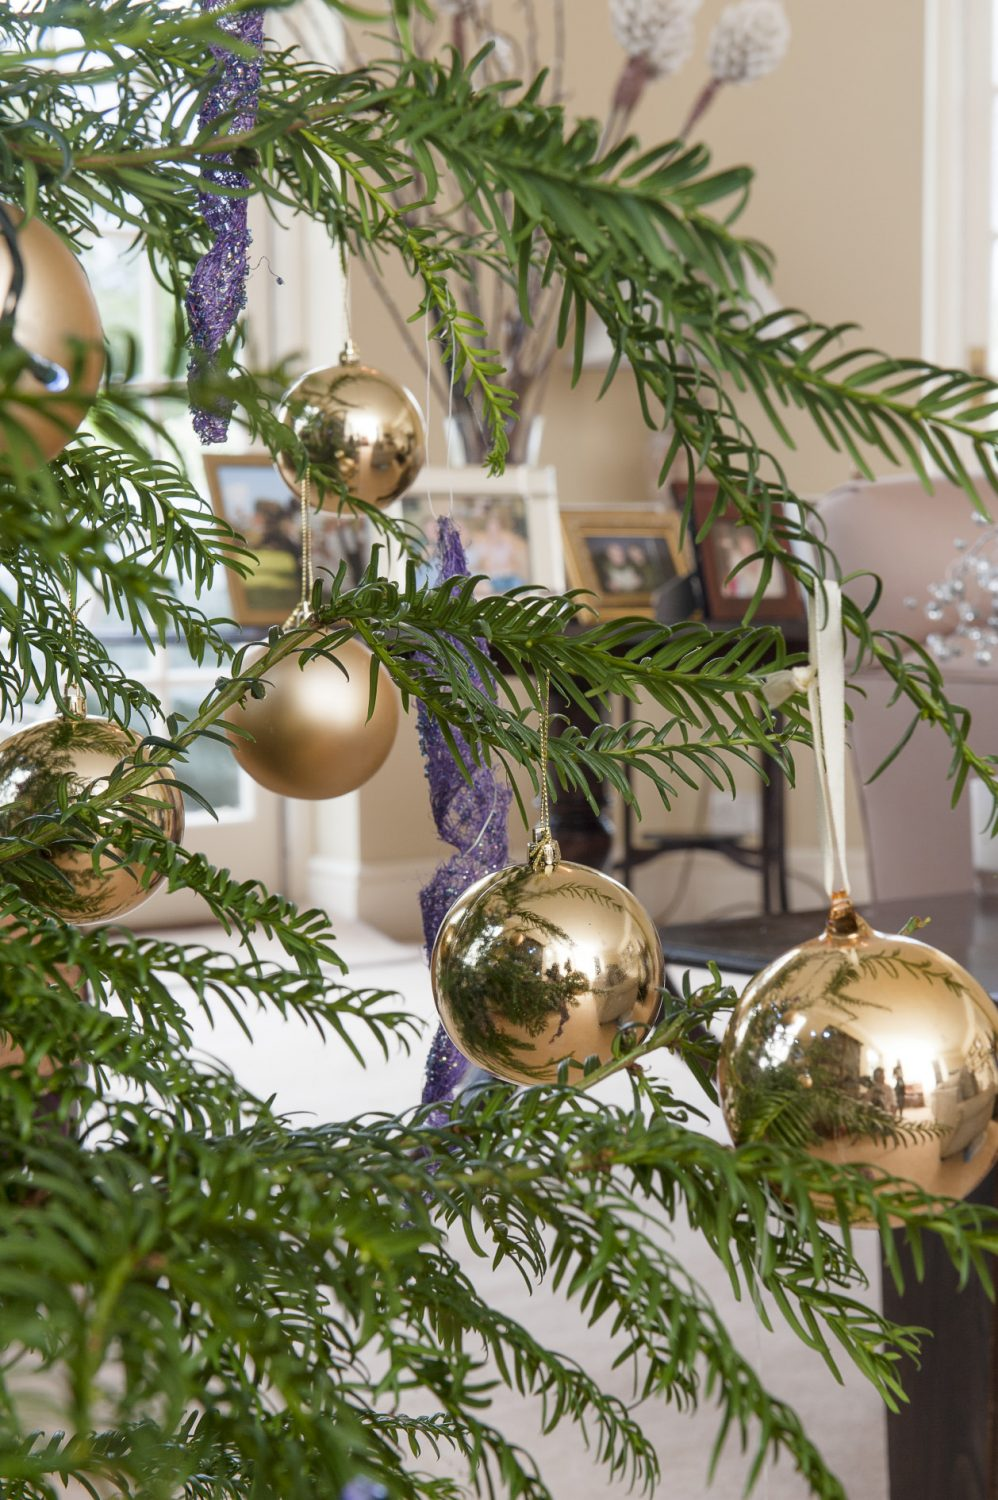 The Christmas tree has been decorated with purple and gold ornaments